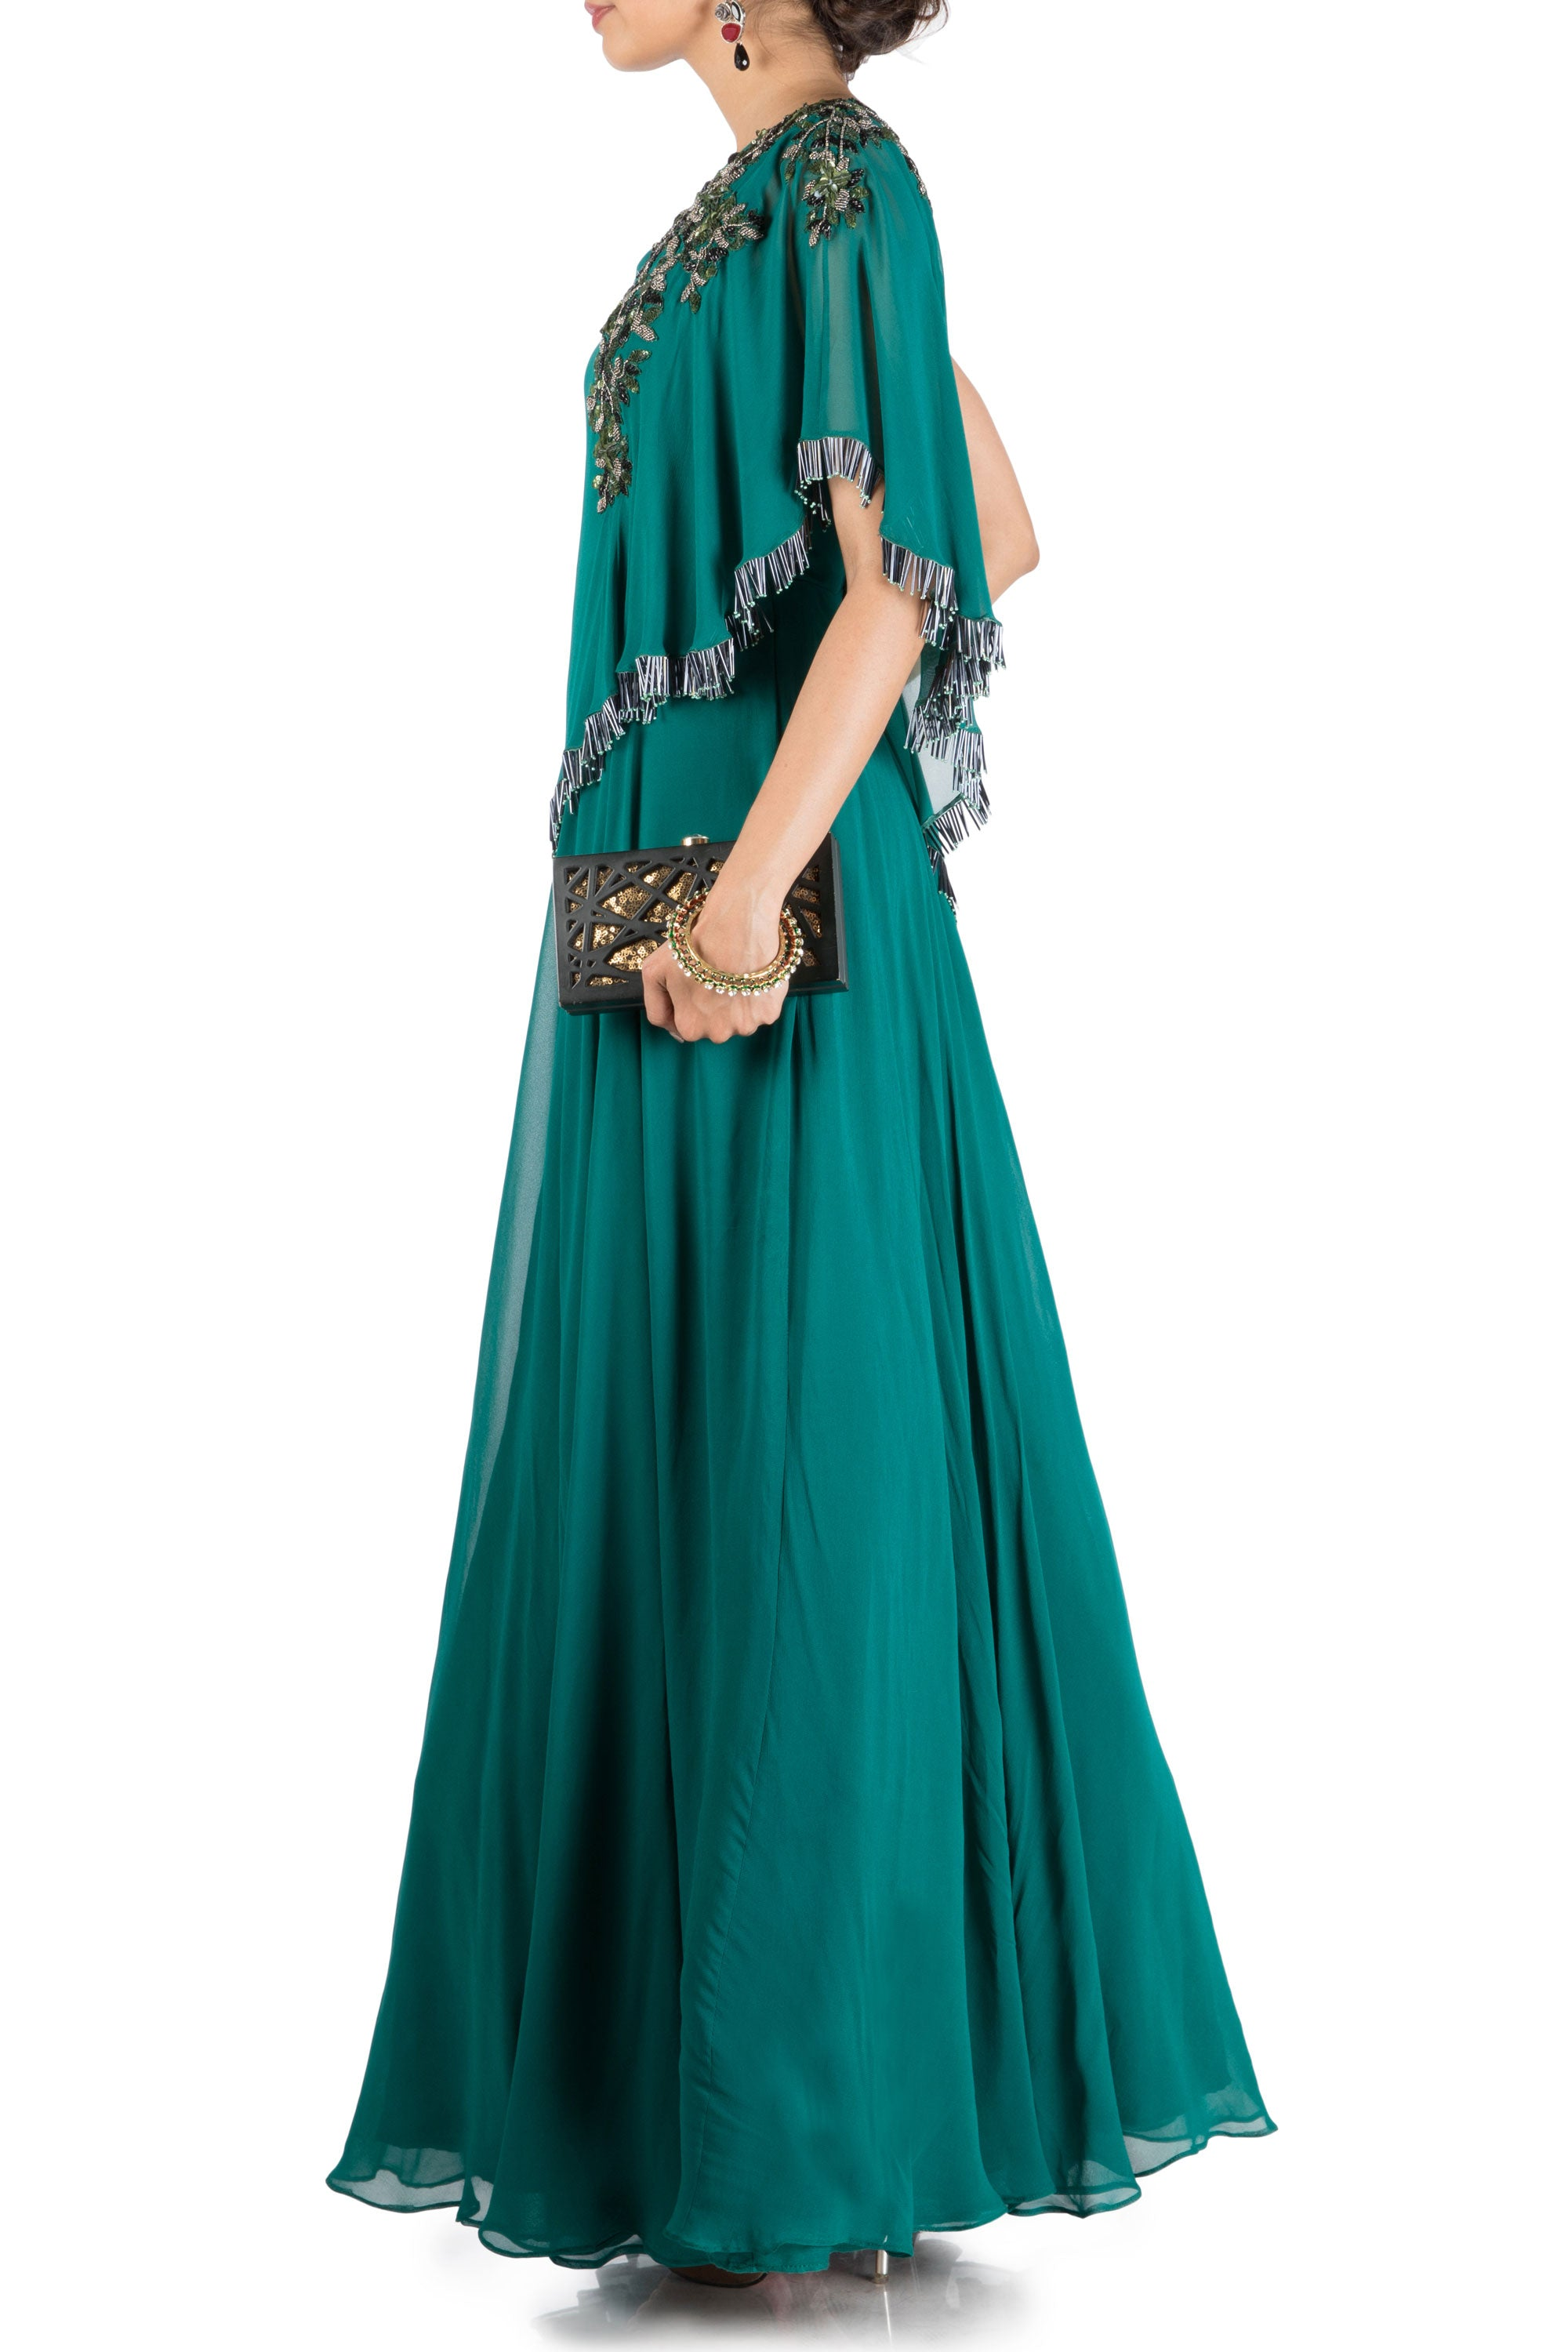 Teal Green One Side Cape Flare Gown Side